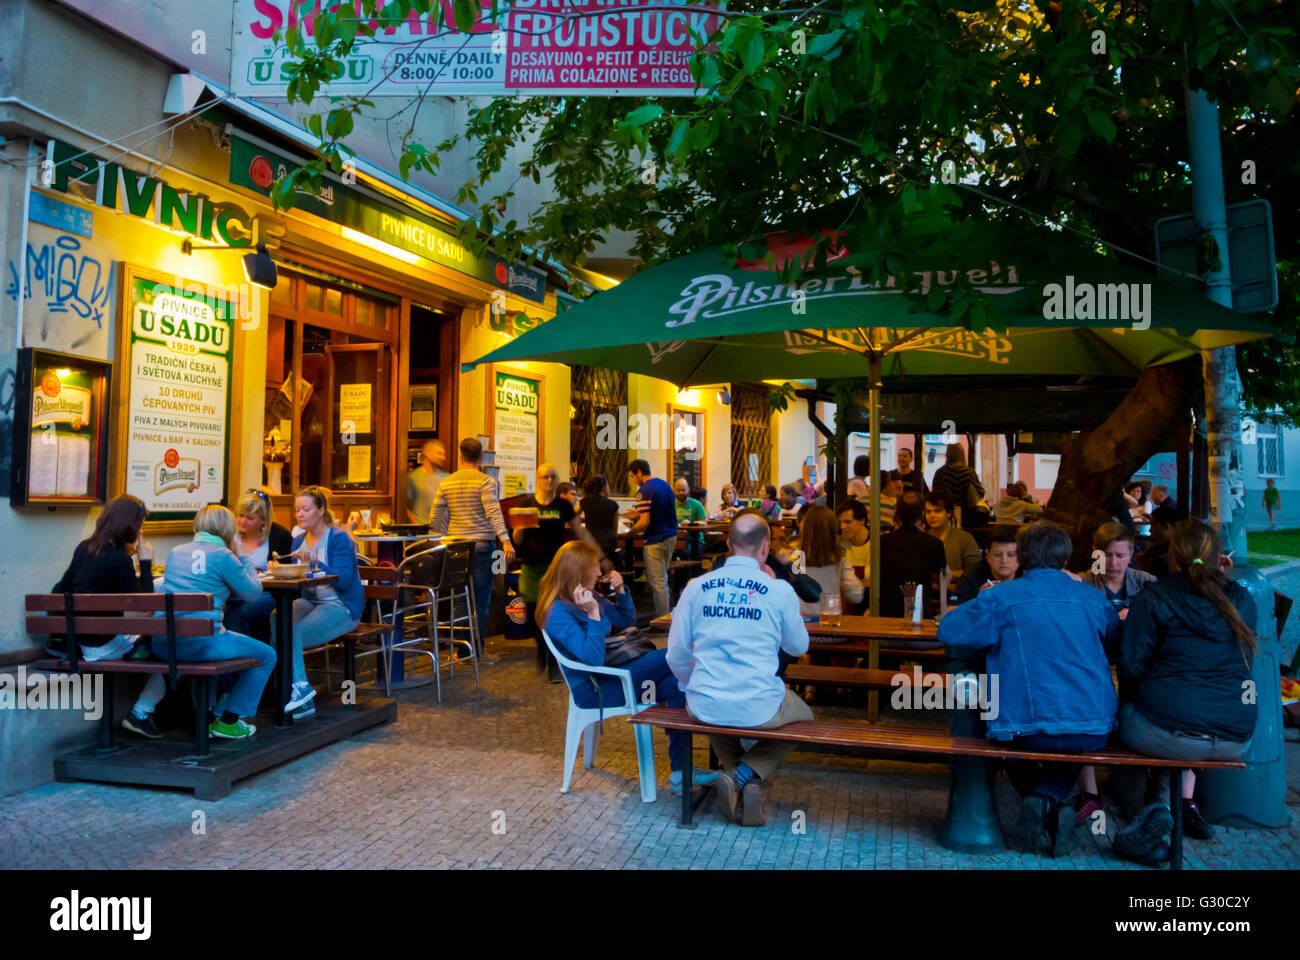 U Sadu, restaurant with large outdoor area, Zizkov, Prague, Czech Republic, Europe - Stock Image